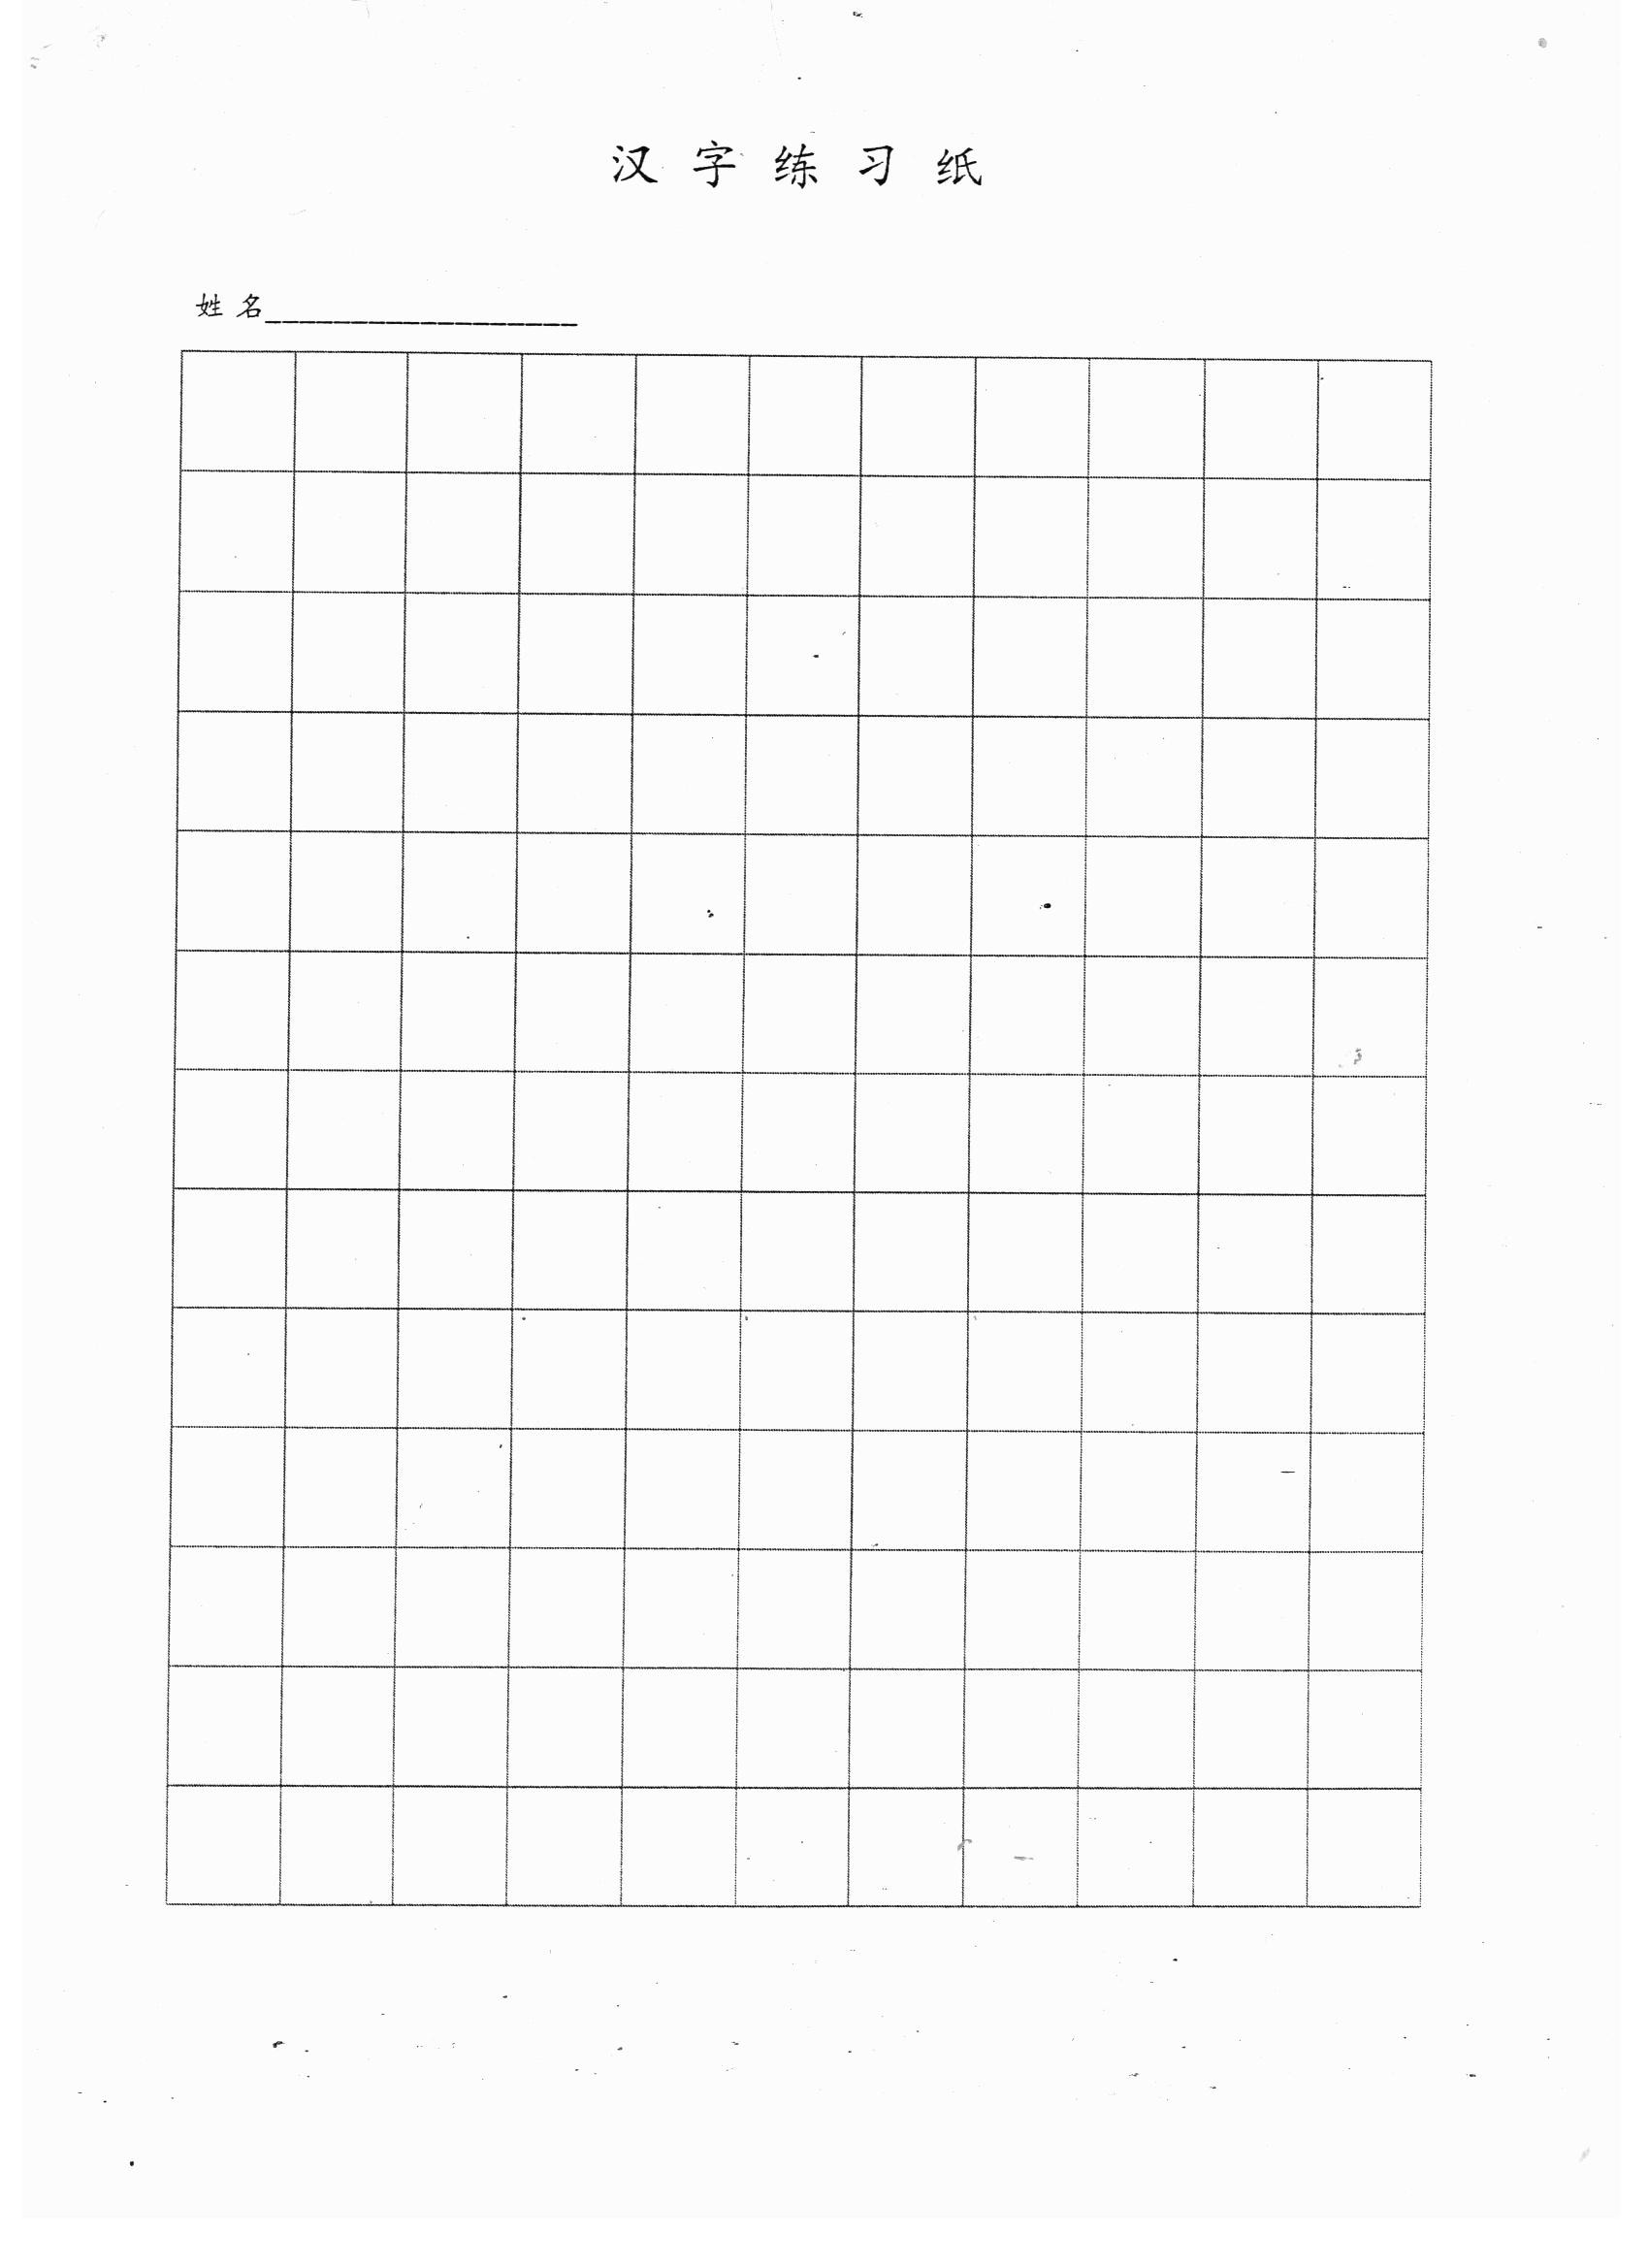 Printable Kanji Practice Sheets Free Chinese Stroke order Worksheets